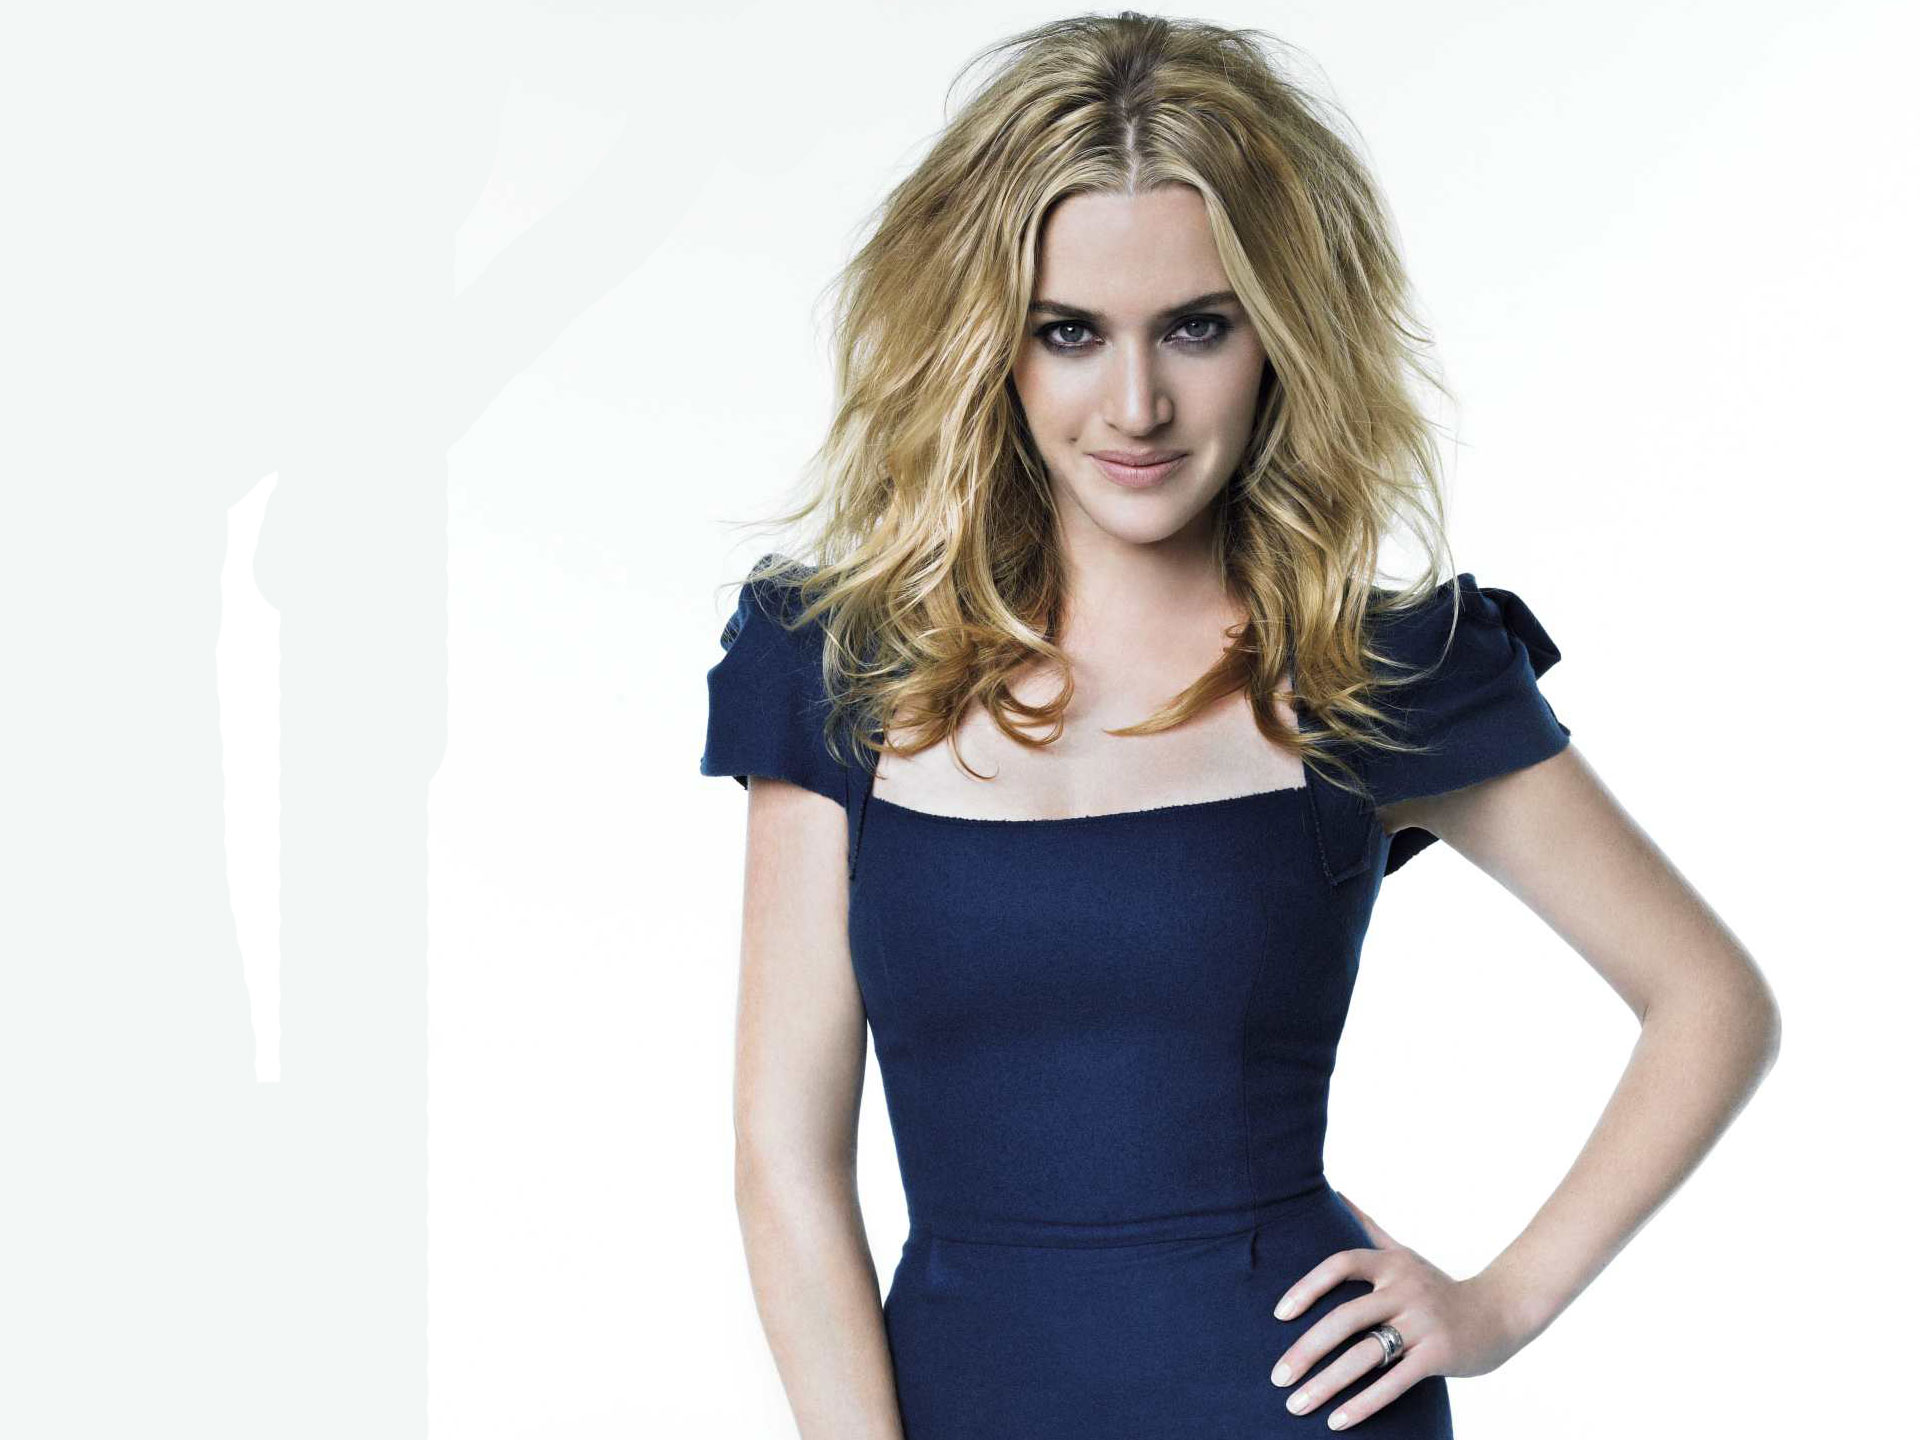 1920x1440 - Kate Winslet Wallpapers 16